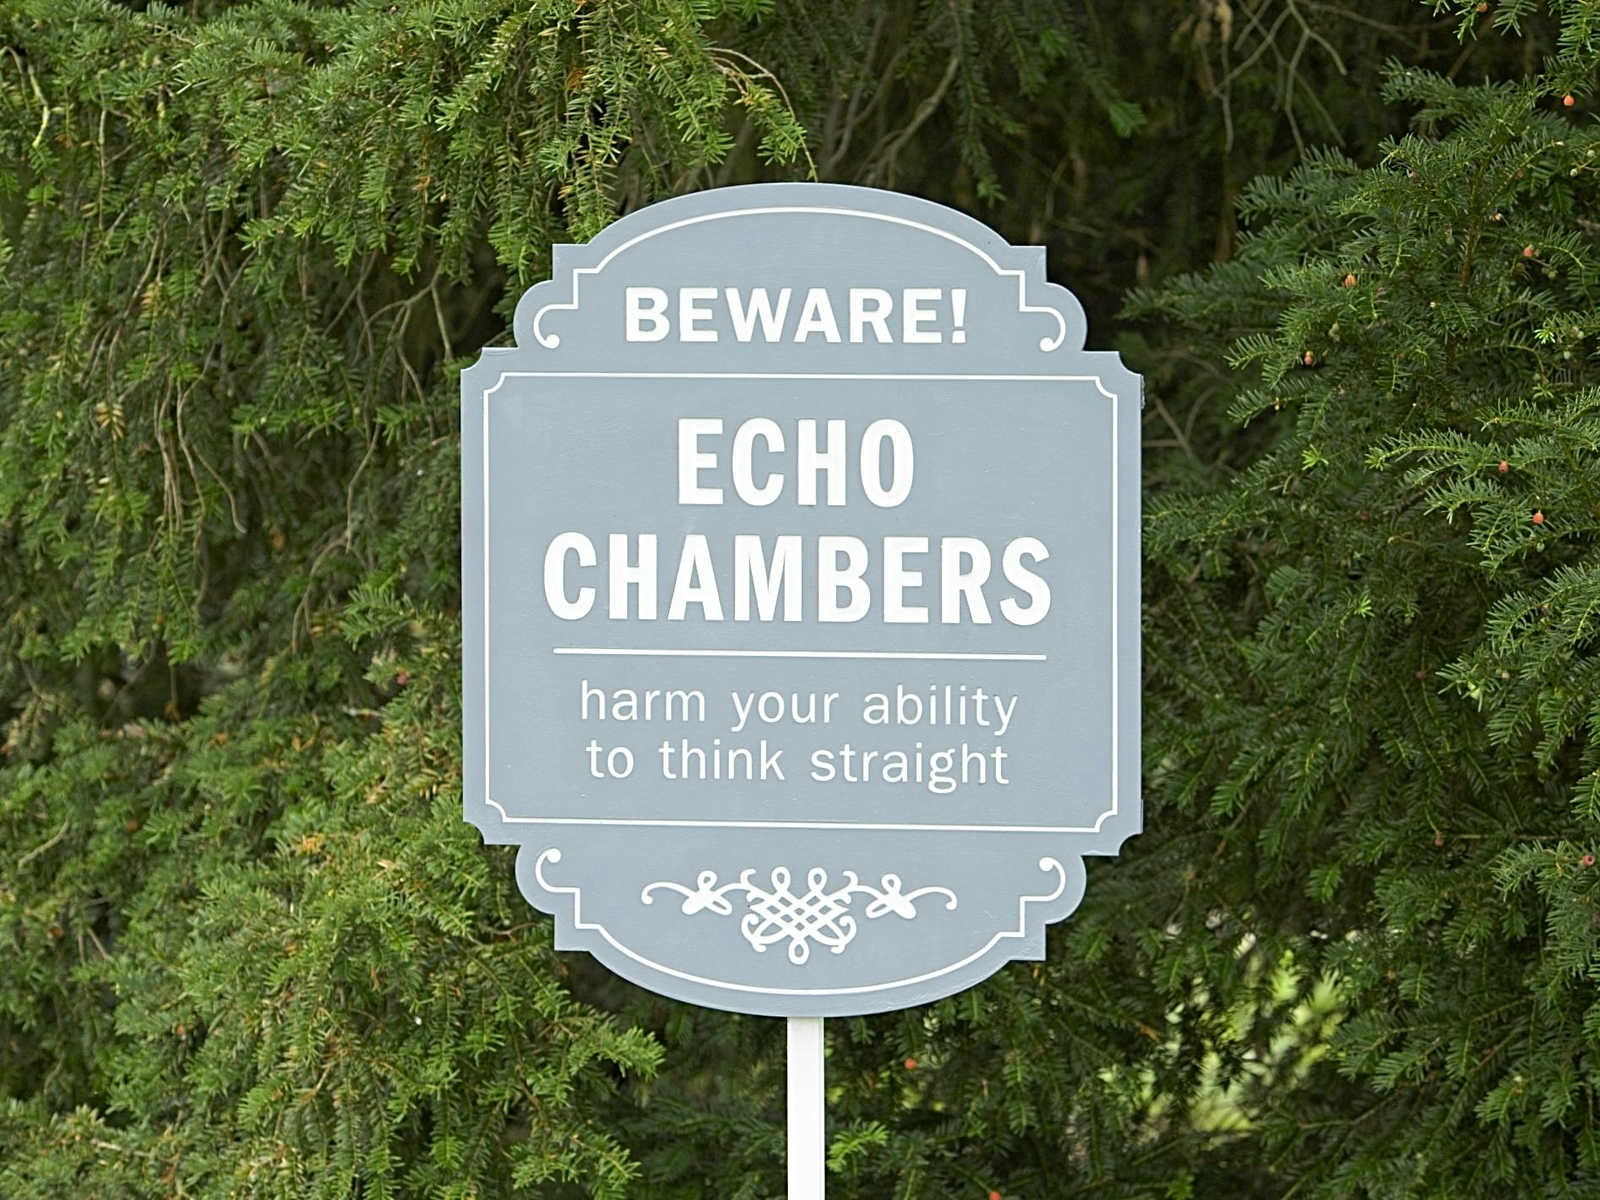 Photo of evergreen trees with a blue wooden sign in front of them saying